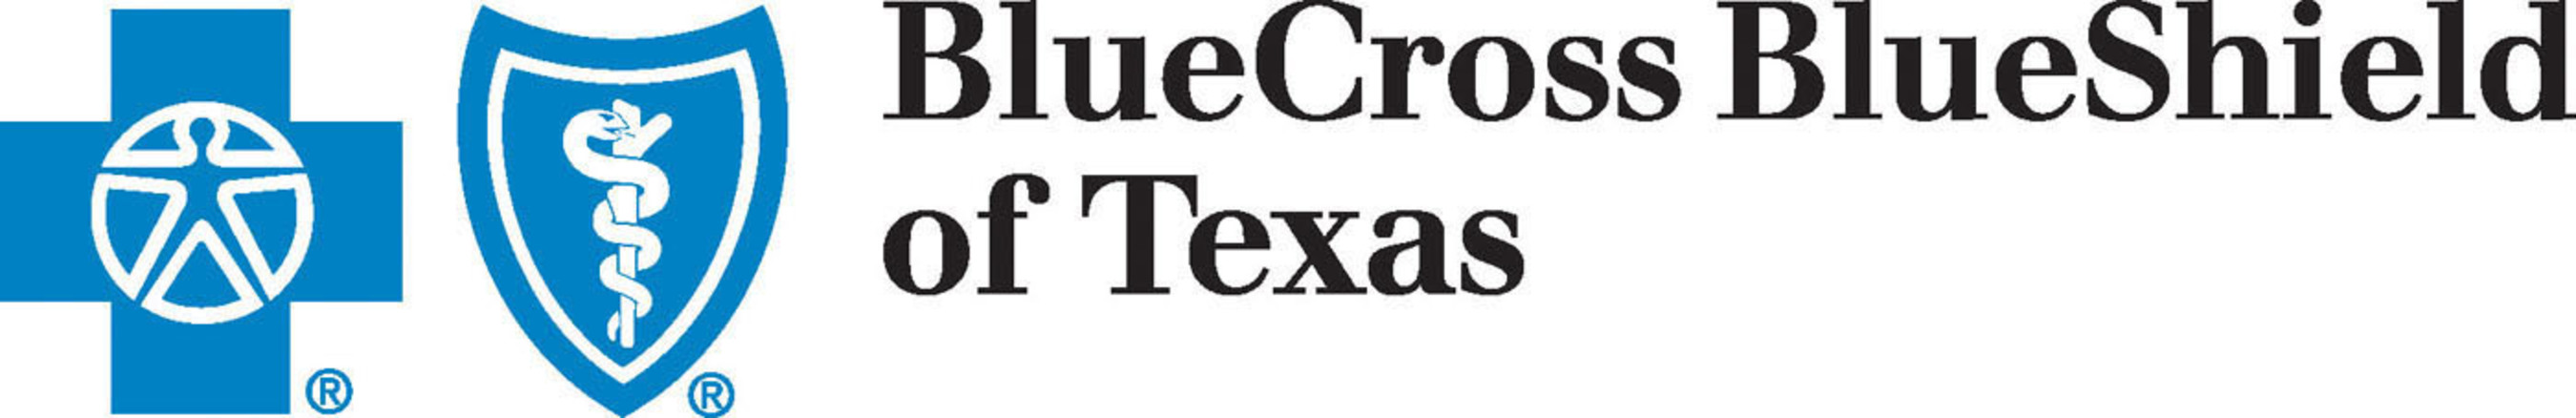 Blue Cross and Blue Shield of Texas logo.